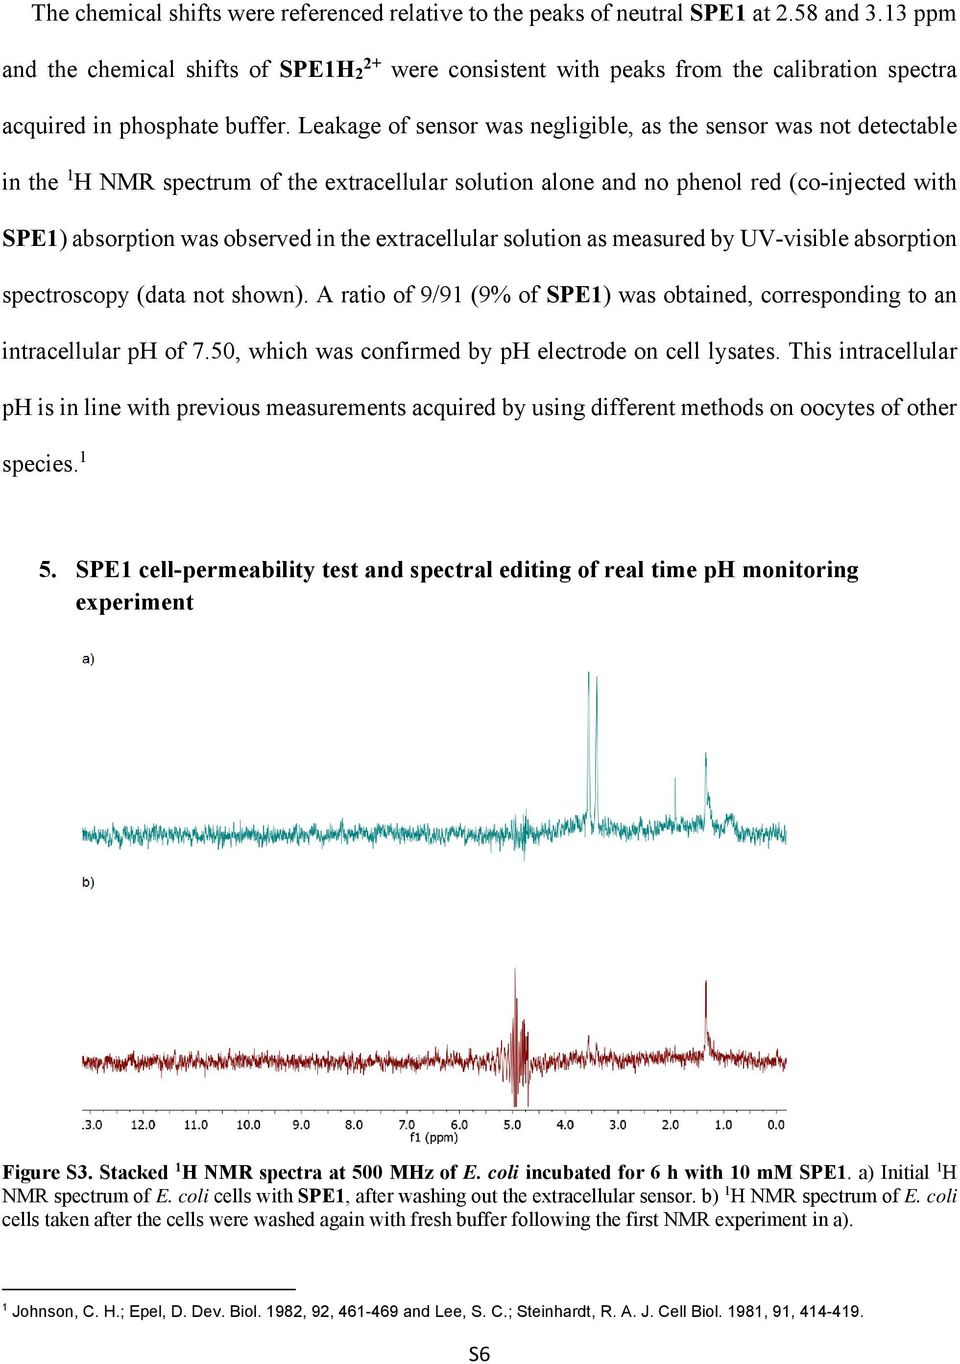 Leakage of sensor was negligible, as the sensor was not detectable in the 1 H NMR spectrum of the extracellular solution alone and no phenol red (co-injected with SPE1) absorption was observed in the